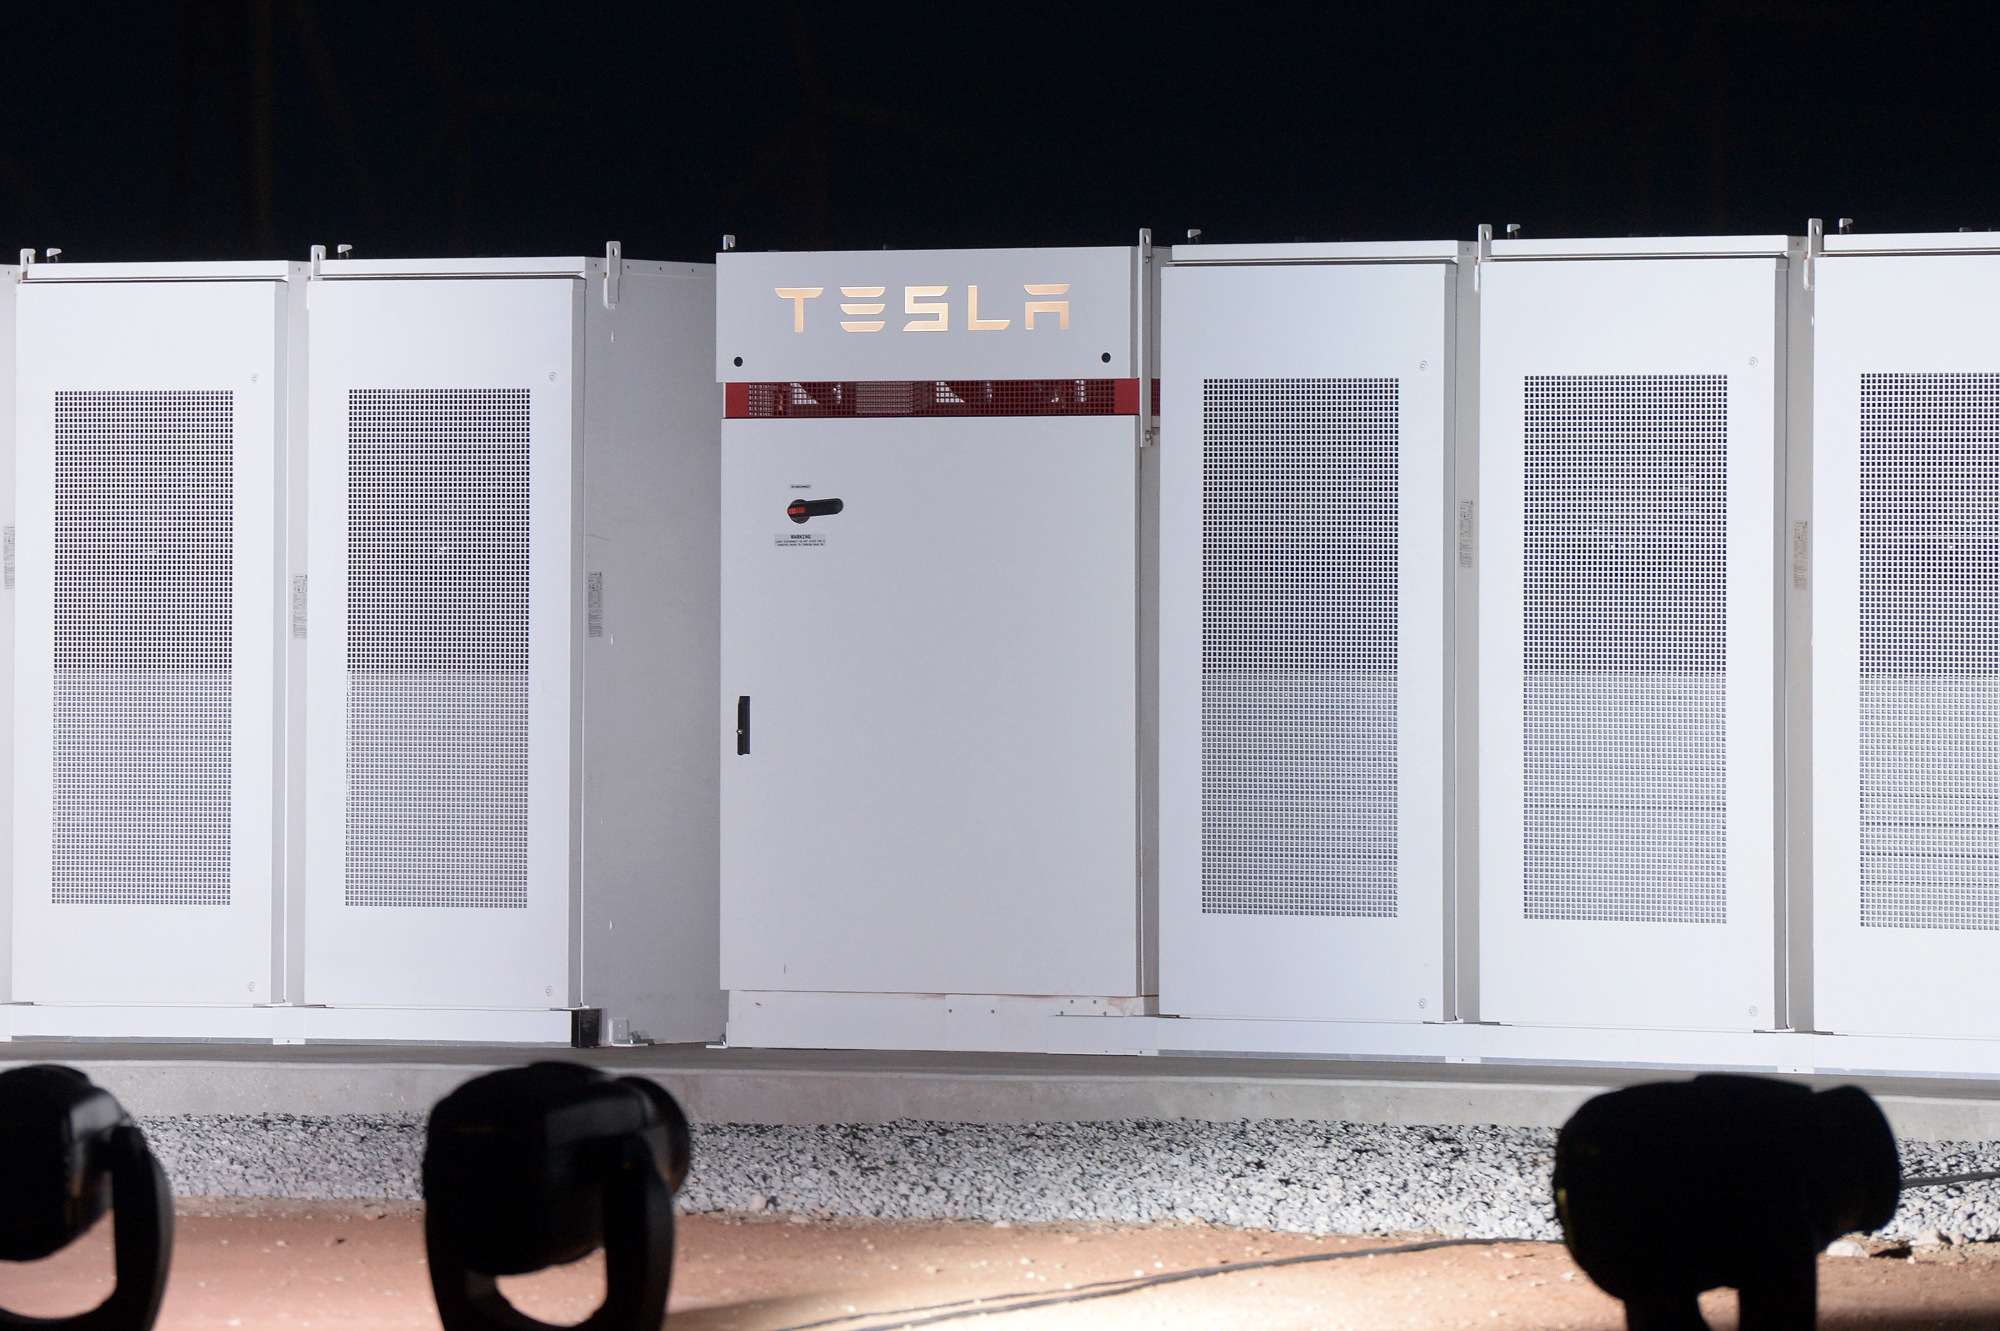 Tesla's battery boast will be short-lived as rivals go bigger